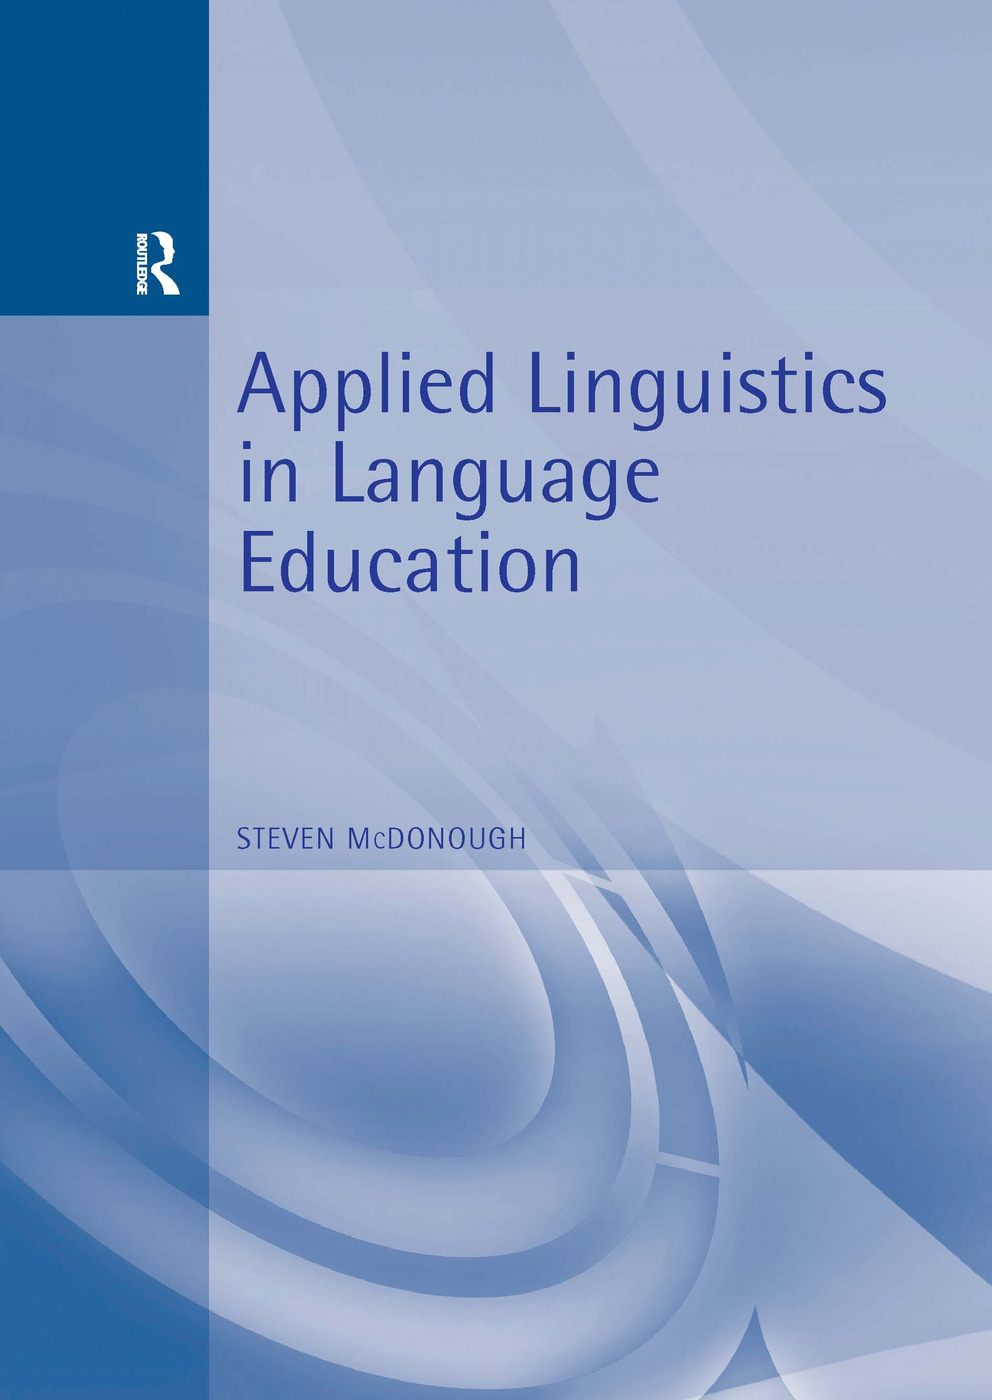 Applied Linguistics in Language Education